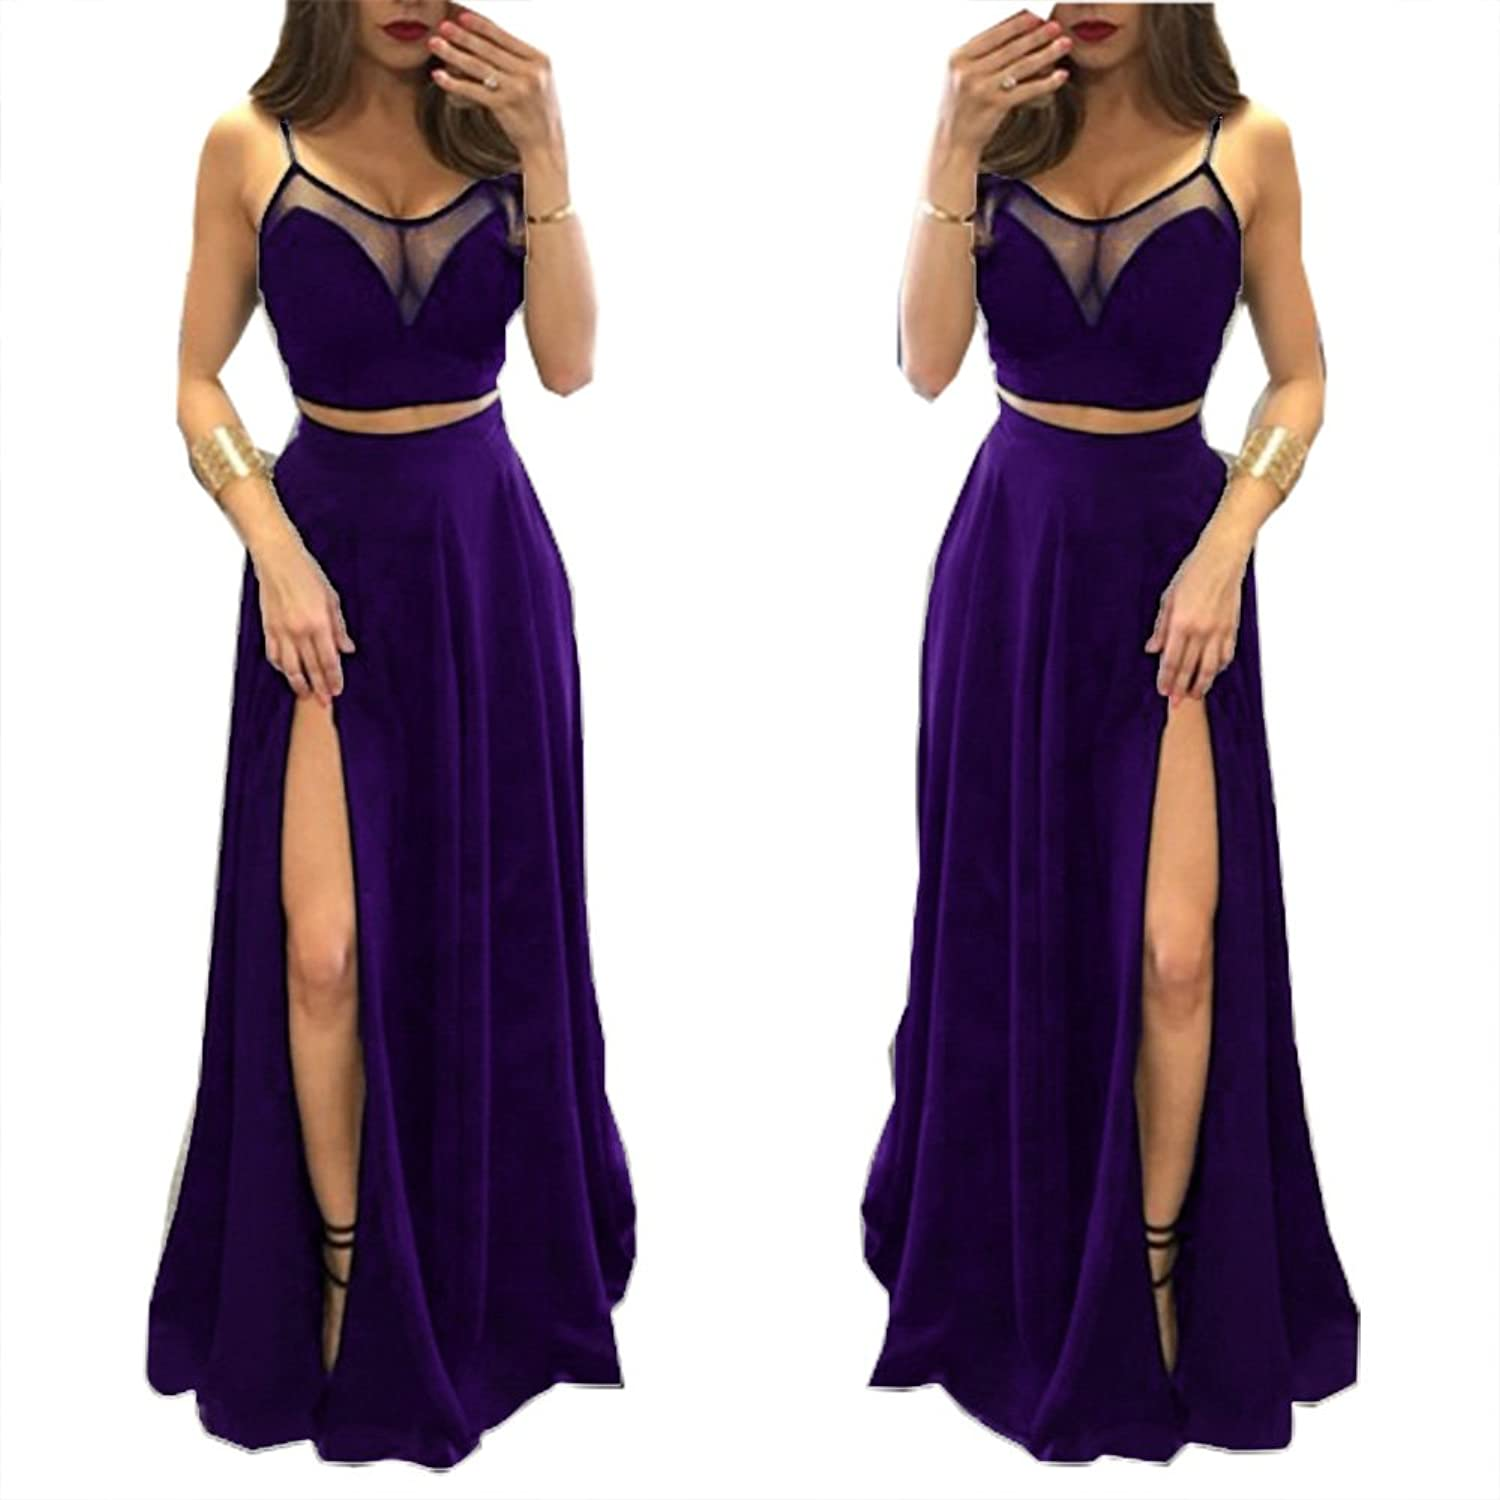 Fanciest Women's Spaghetti Straps Two Pieces Prom Dresses 2016 Evening Gowns